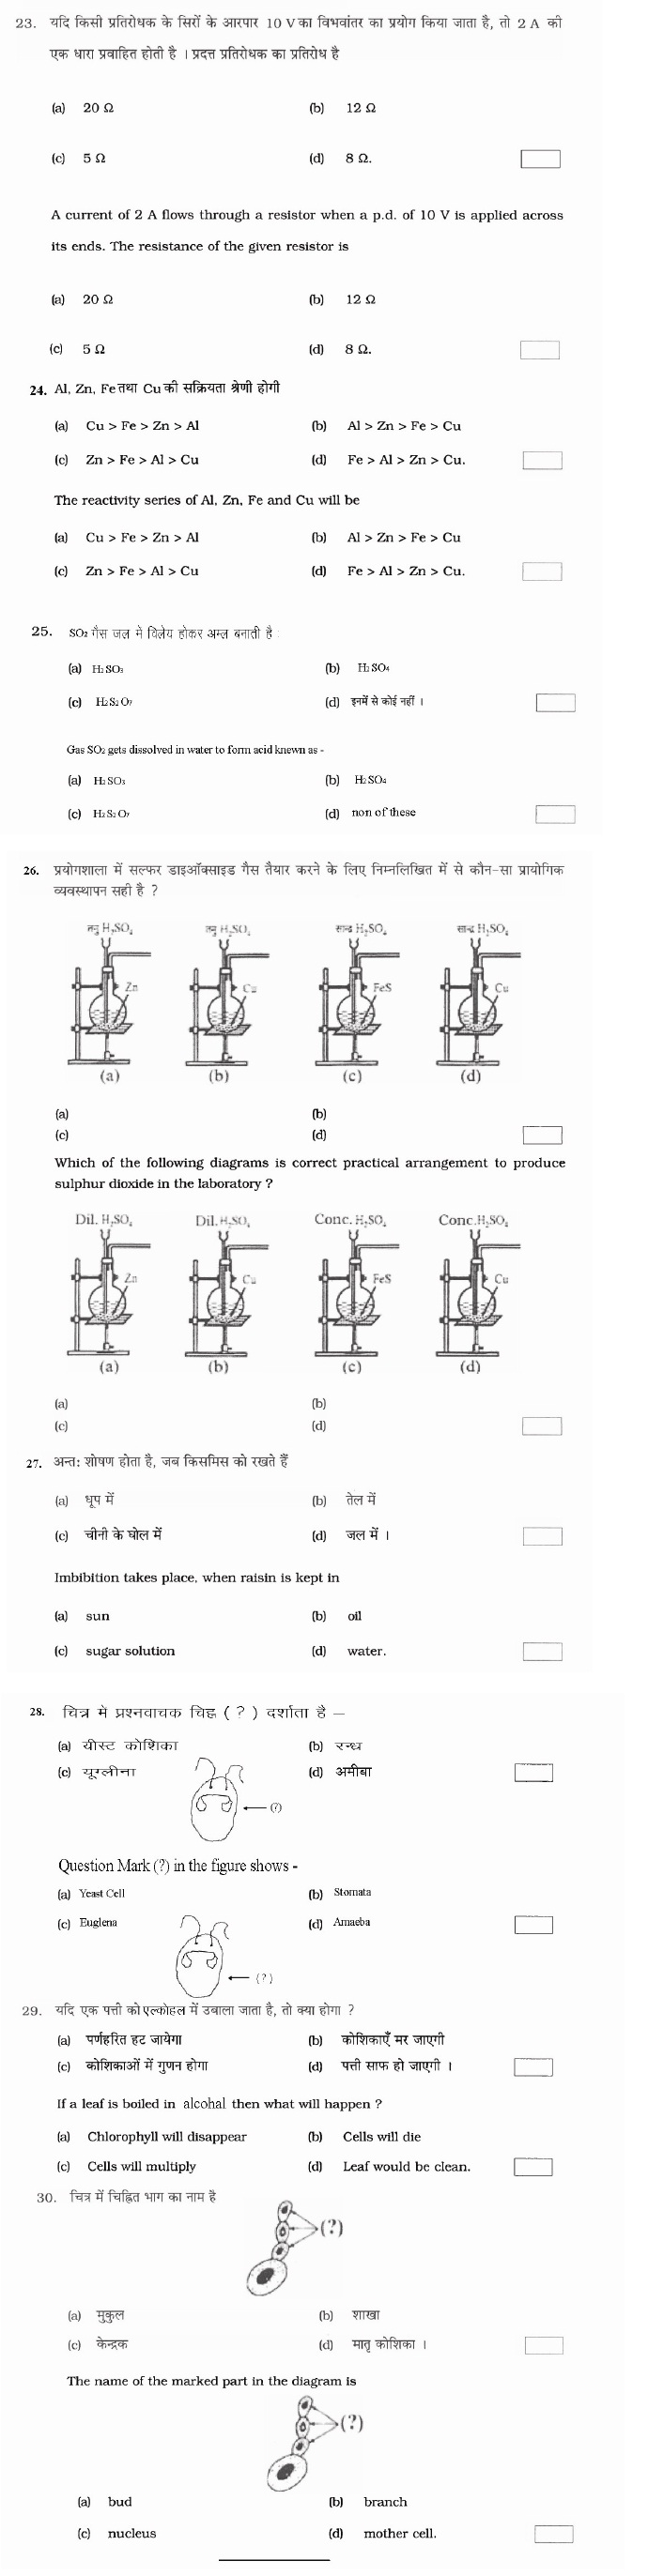 Jharkhand Board Class X Sample Papers - SCIENCE PRACTICAL